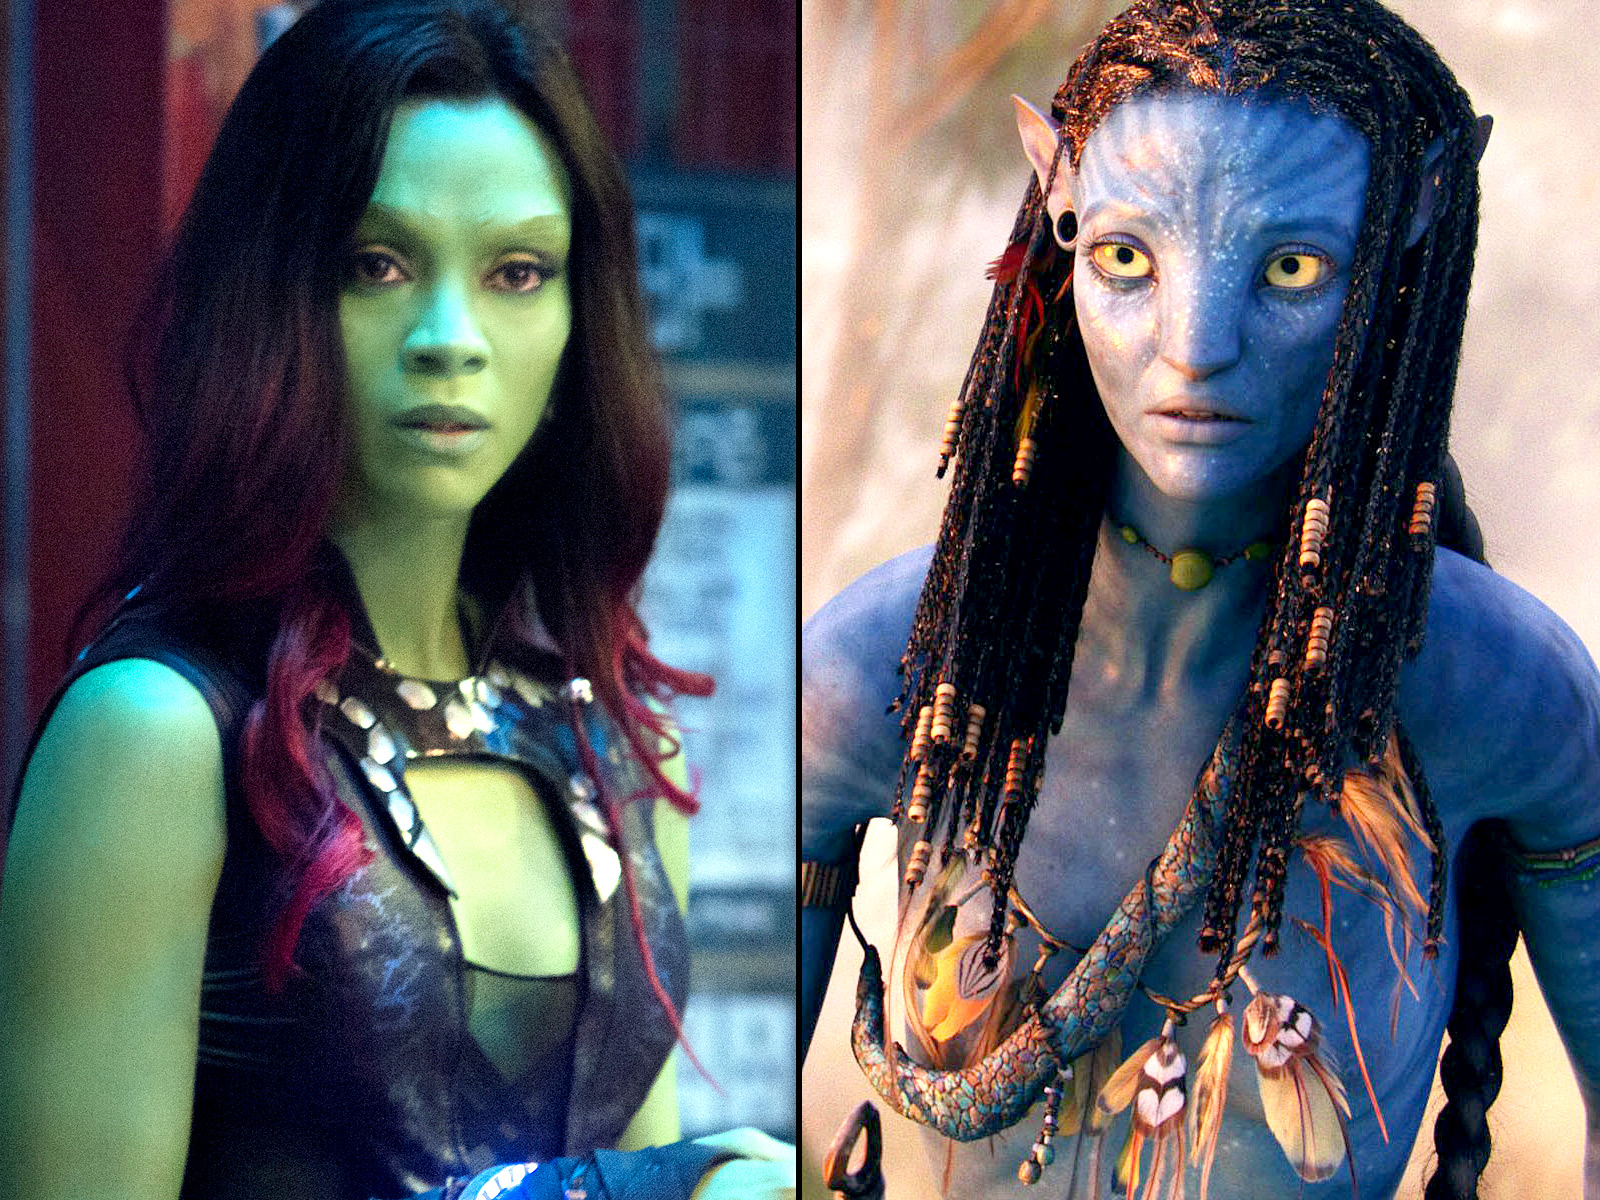 1406046669_zoe-saldana-avatar-guardians-of-the-galaxy-zoom